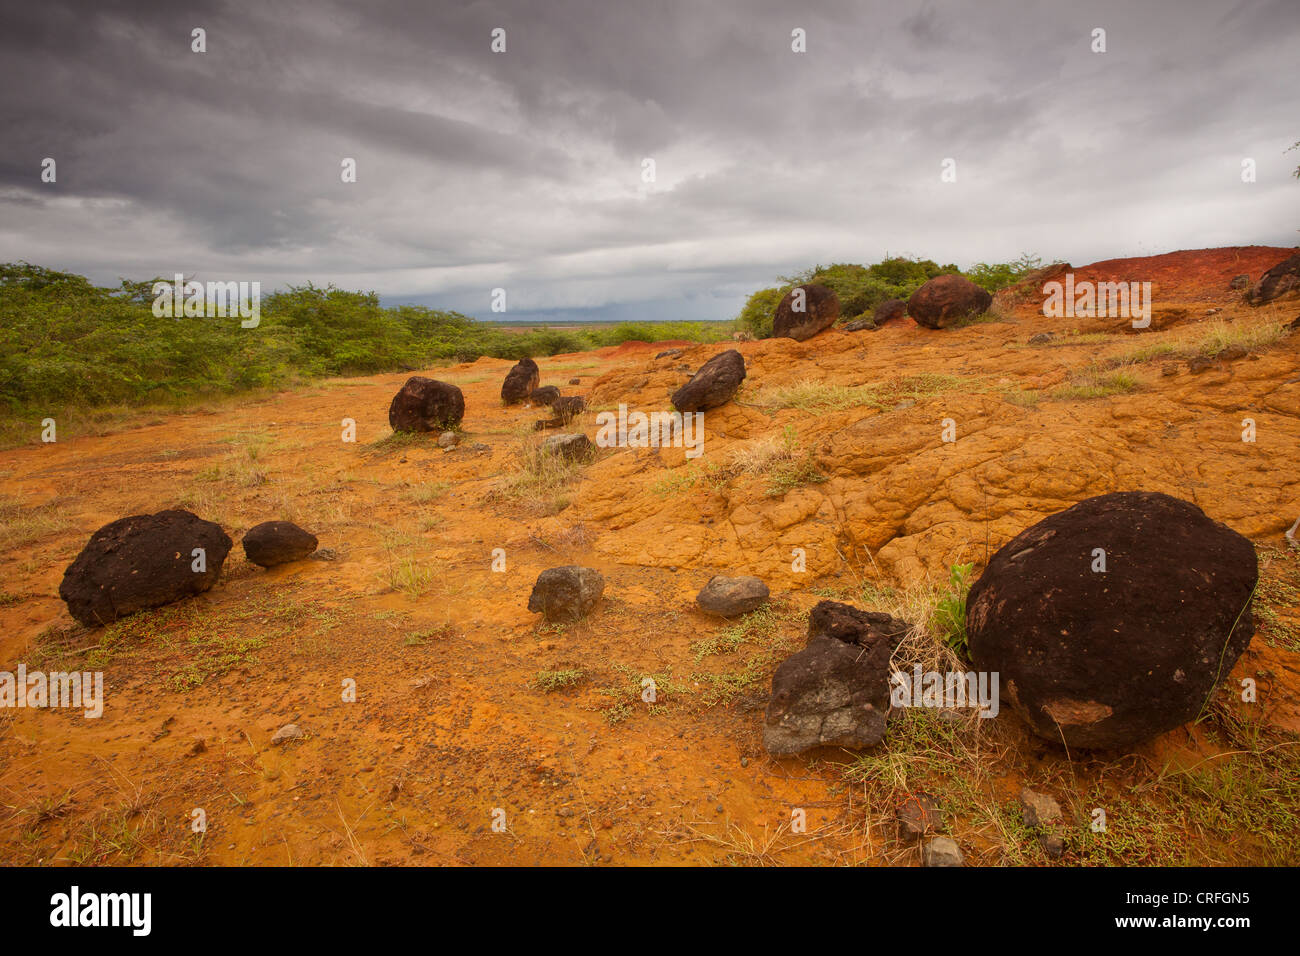 Volcanic rocks and eroded ground in Sarigua national park, Herrera province, Republic of Panama. - Stock Image